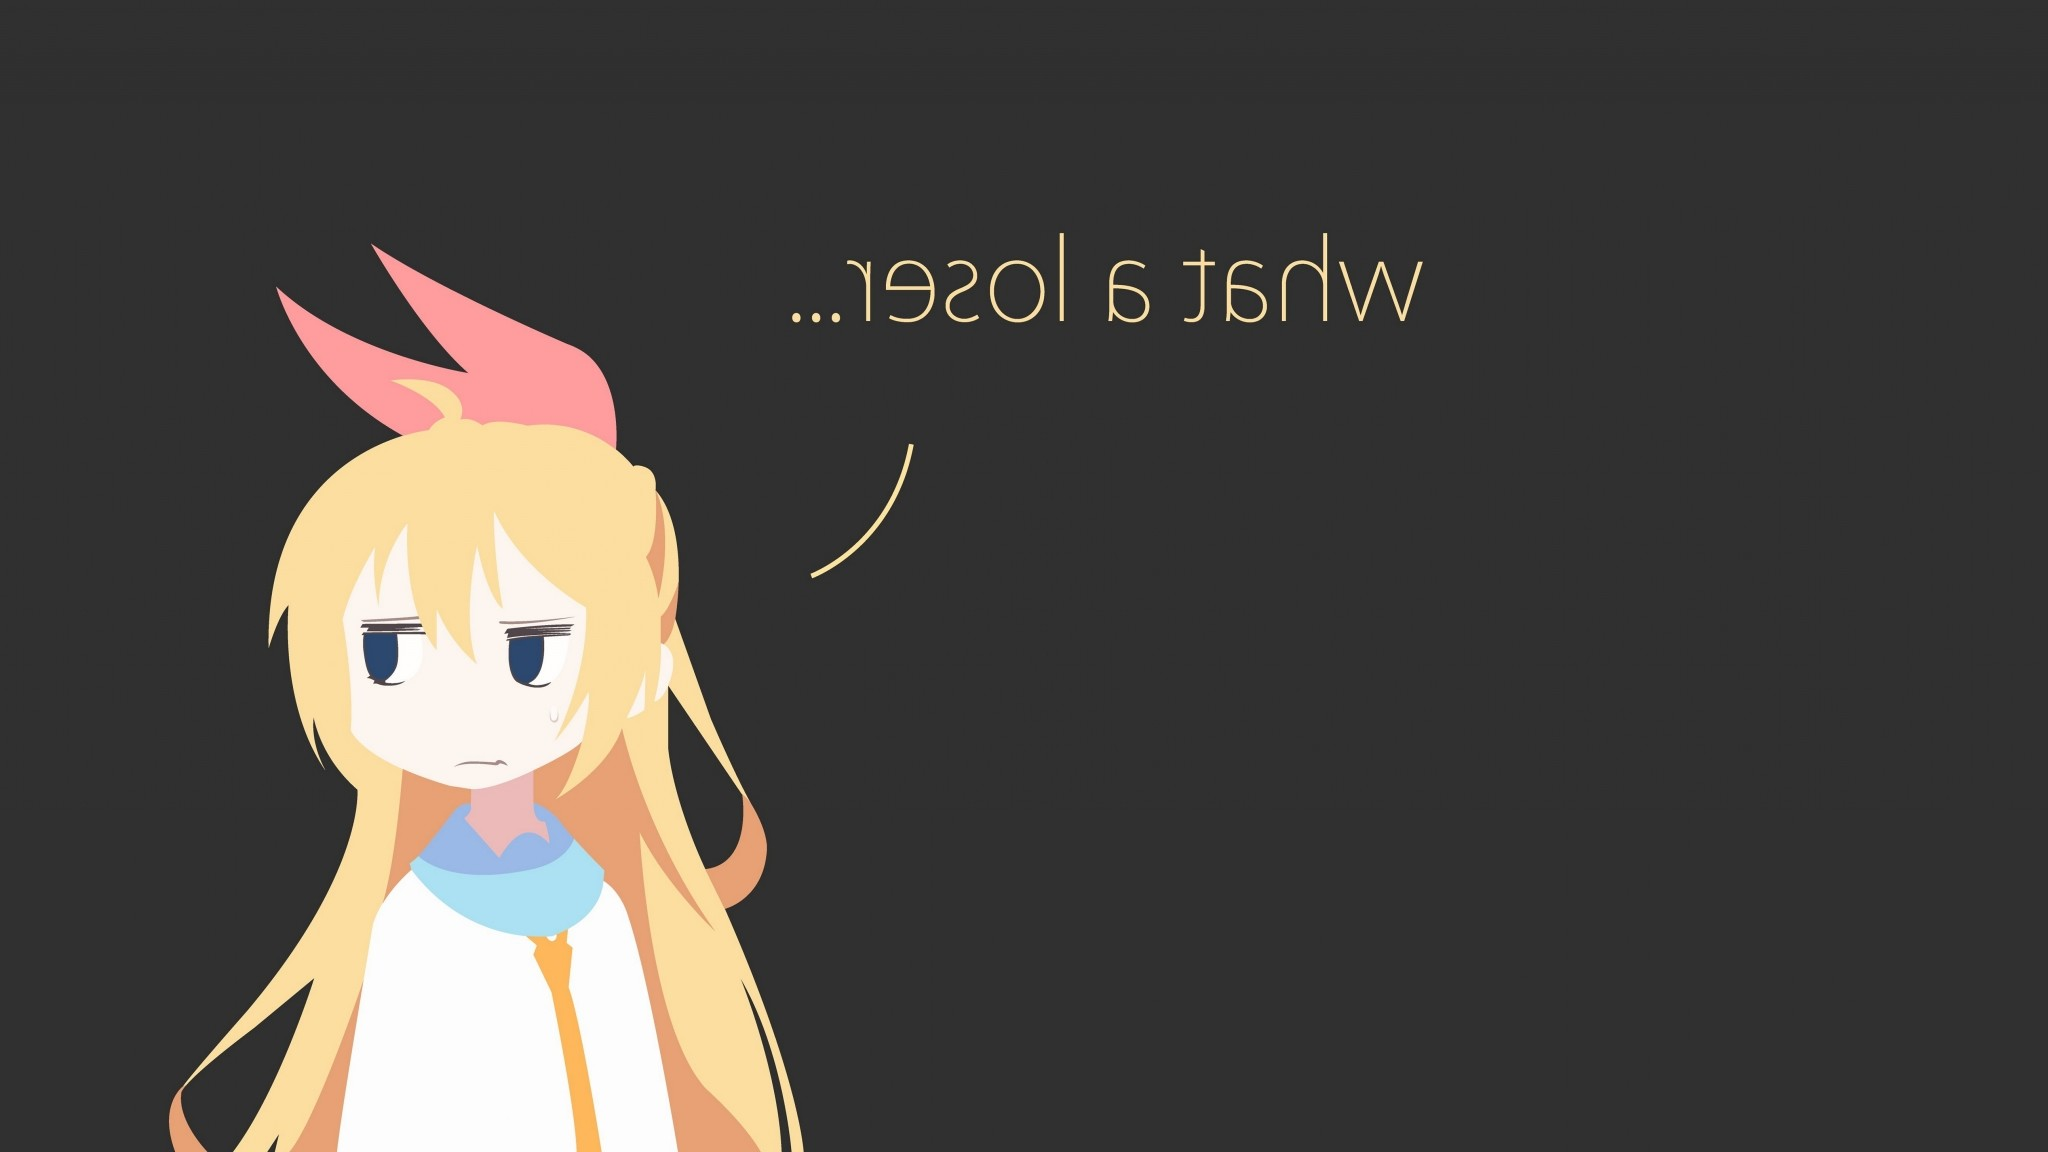 Download What a Loser Amazing Sad Anime Wallpaper In Many Resolutions